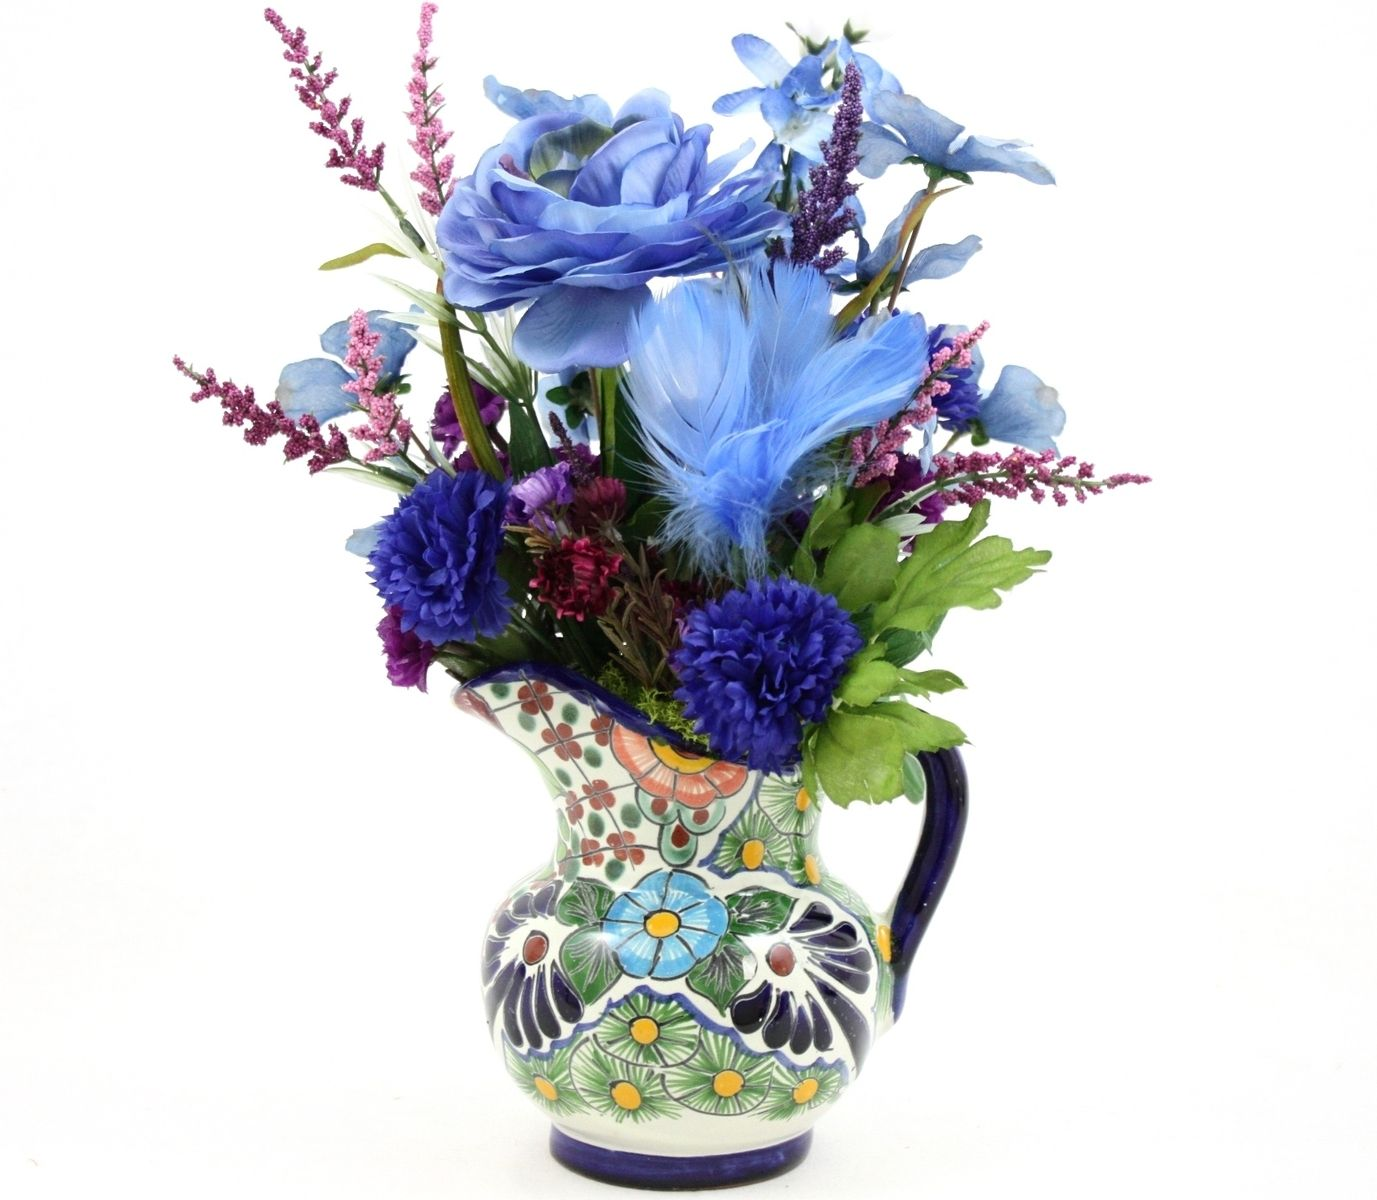 Custom Made Country Home Decor Silk Flower Arrangement  : 195455513509 from www.custommade.com size 1377 x 1200 jpeg 145kB